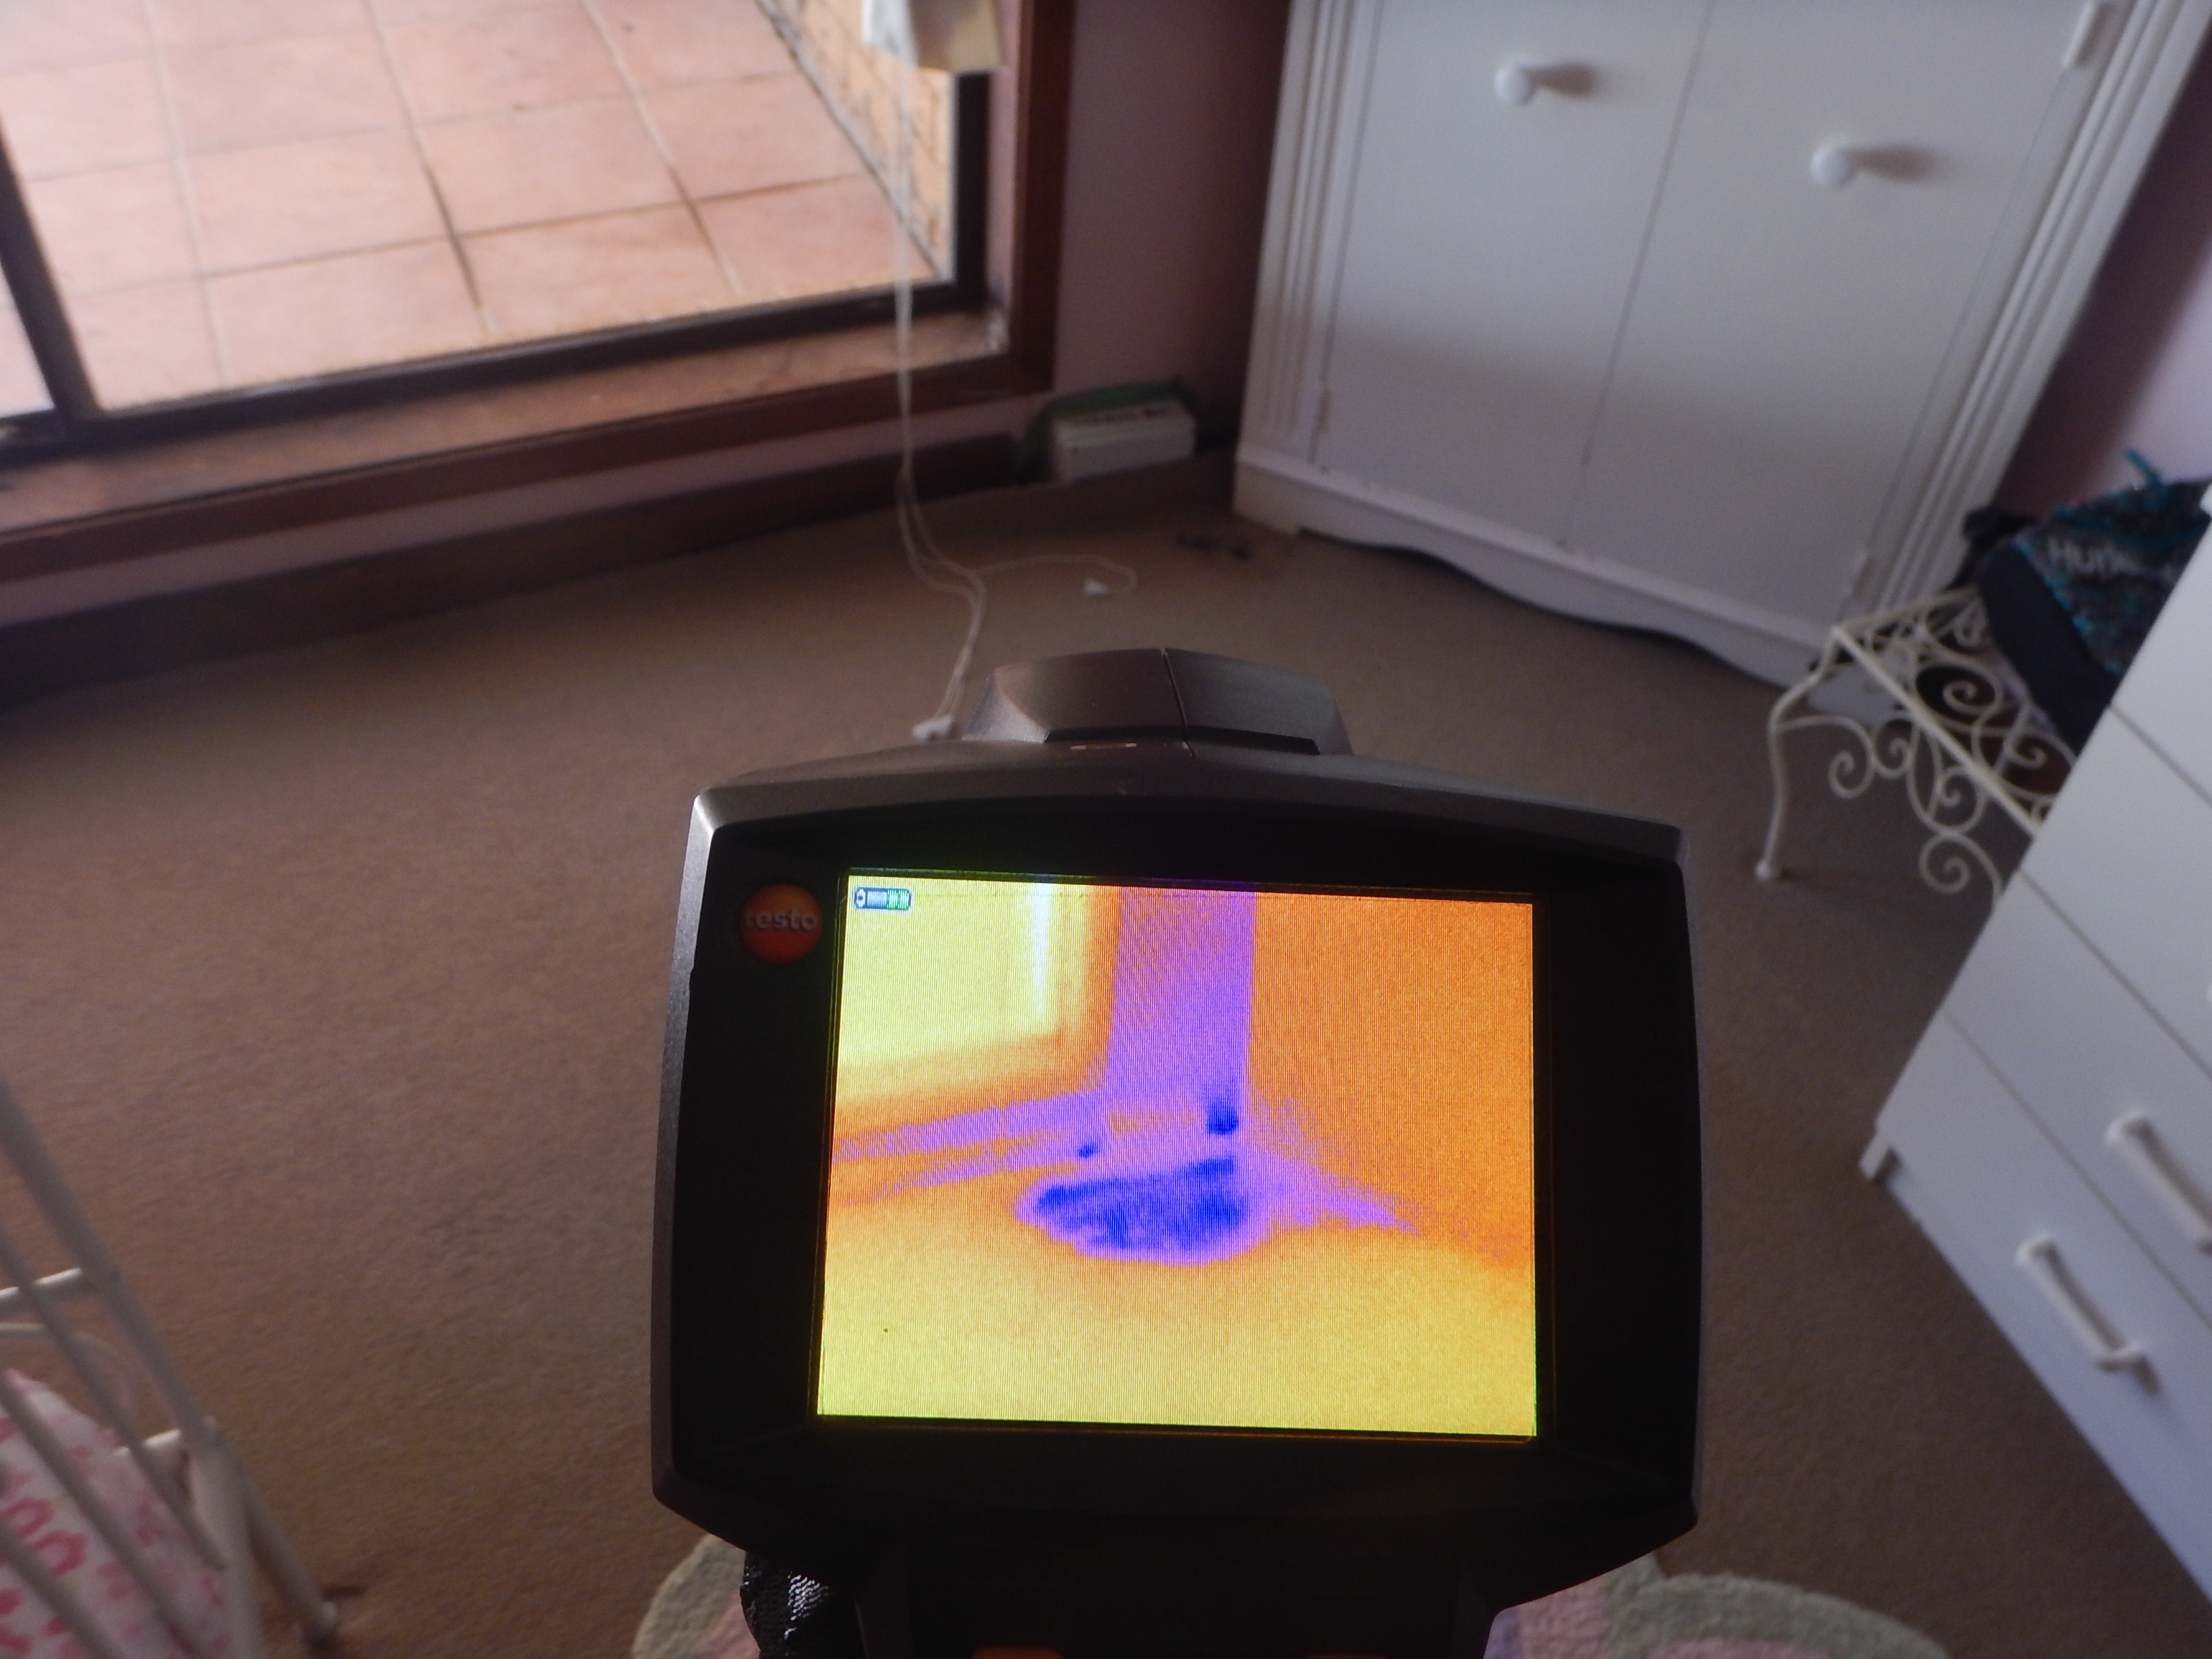 Thermal cameras are used during a building and pest inspection in Sydney properties to find termites and leaking. Also known as infra red or thermography